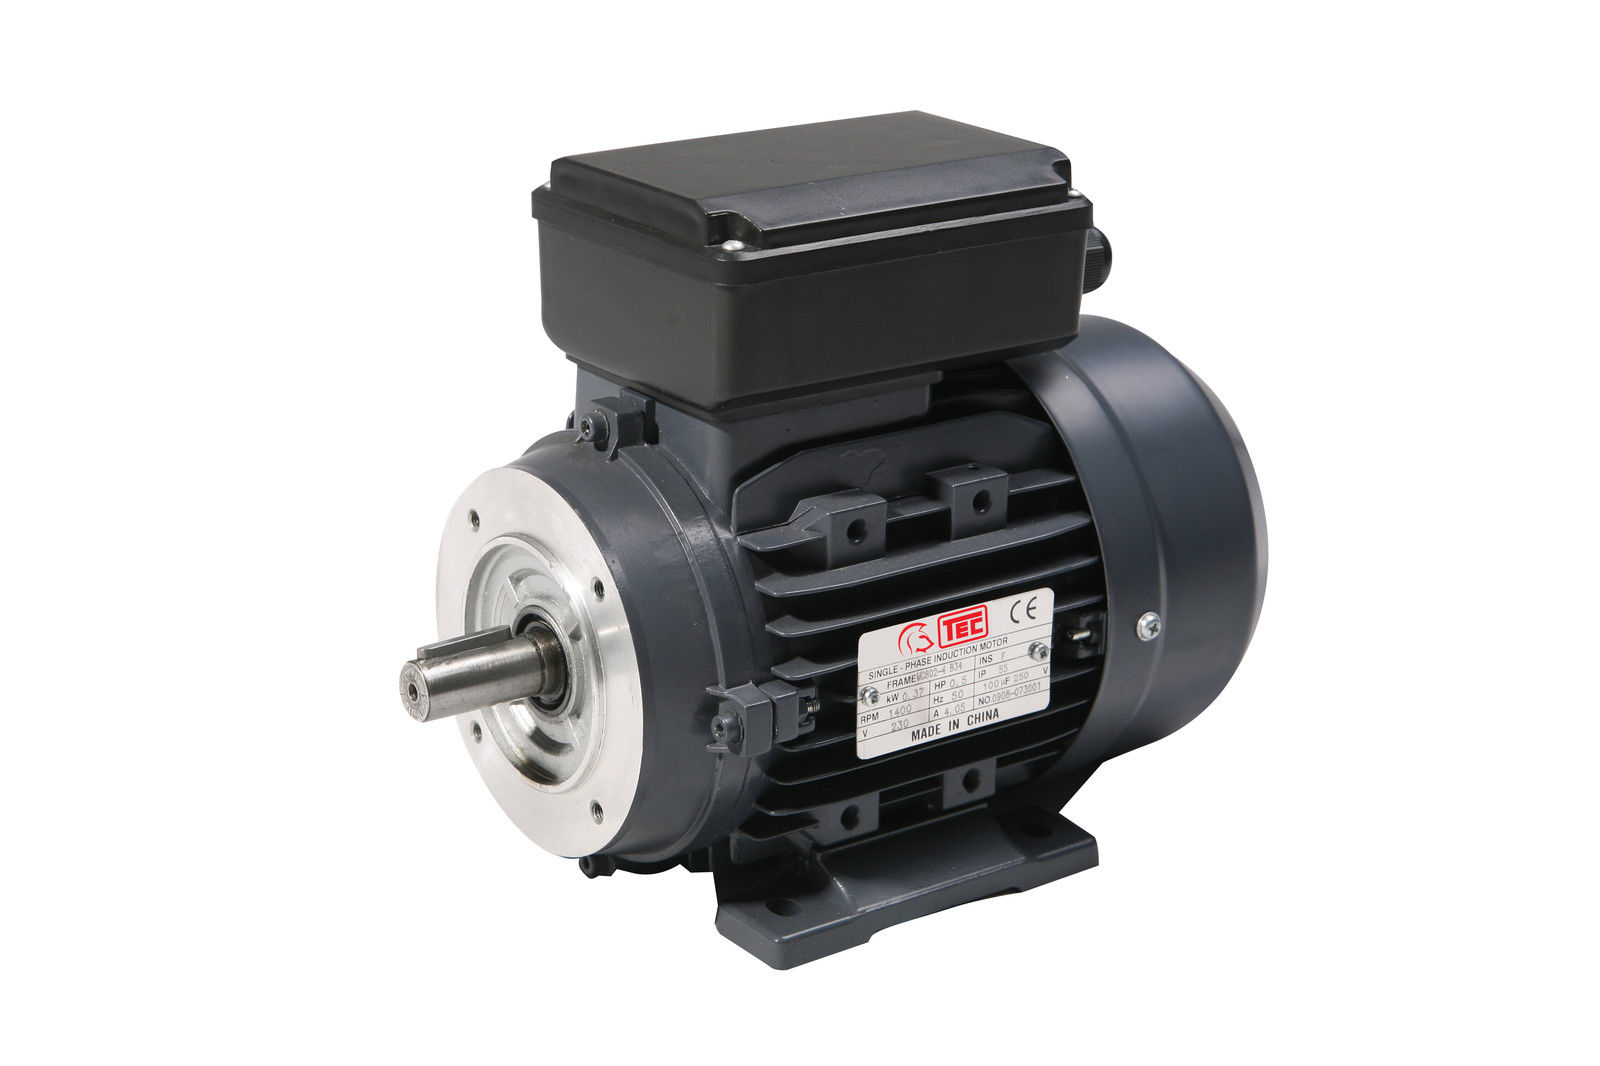 0 37 Kw  0 5 Hp Single Phase Electric Motor 240v 1400 Rpm  37kw  1  2hp 370 Watt